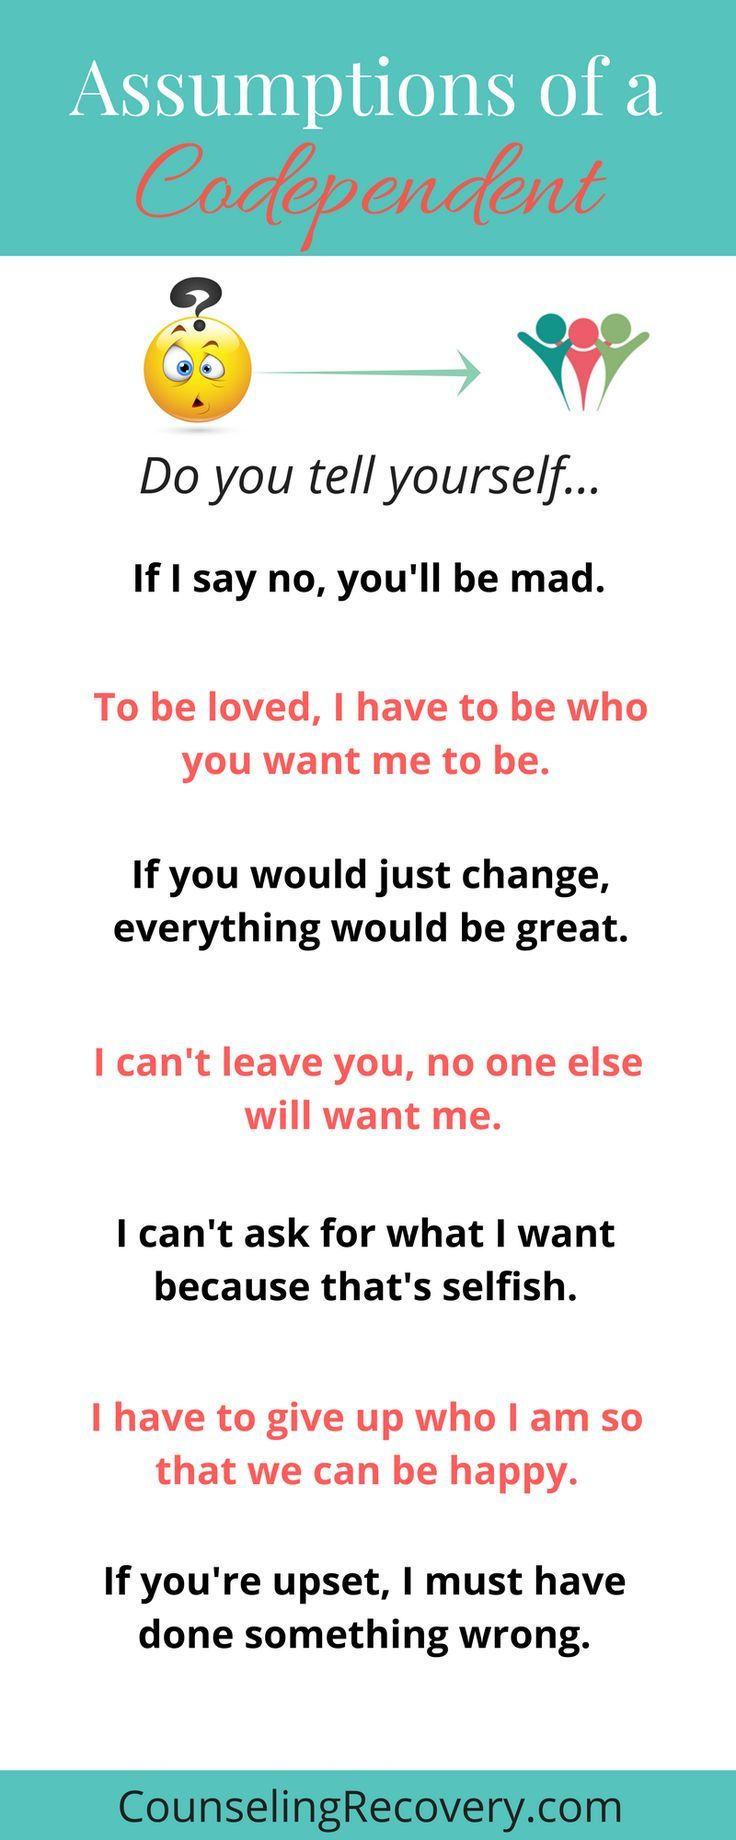 Worksheets Codependency Worksheets 60 best codependency recovery images on pinterest do you wonder if are really codependent or just have a giving nature these